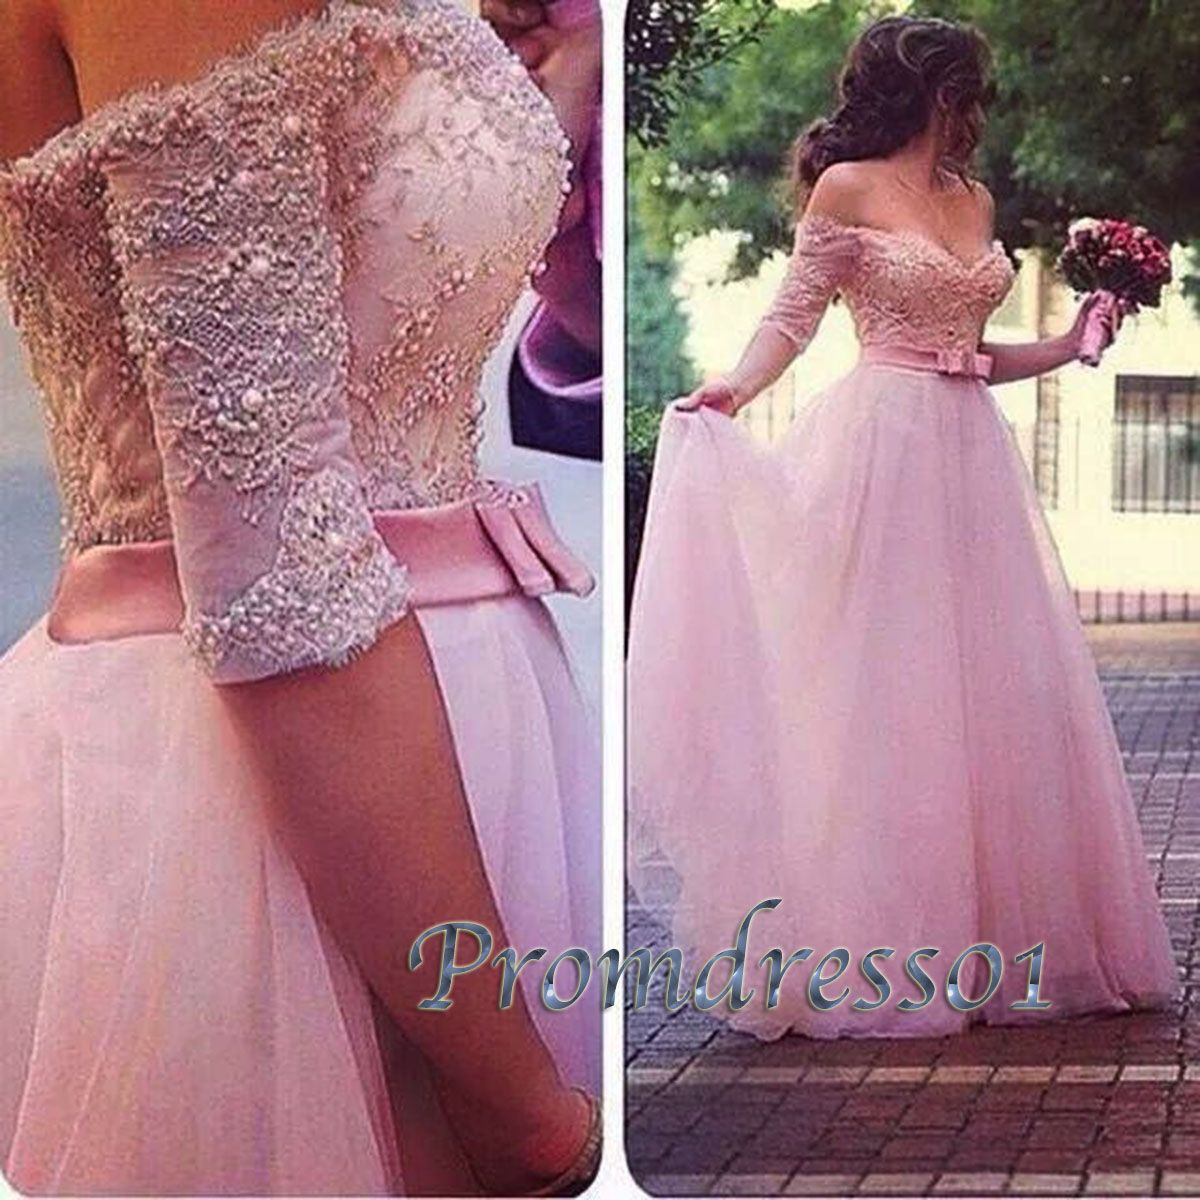 Gorgeous pink tulle strapless long prom dress, off-shoulder ball gown, non-white wedding dress, 2016 evening dresses from #promdress01 #promdress www.promdress01.c... #coniefox